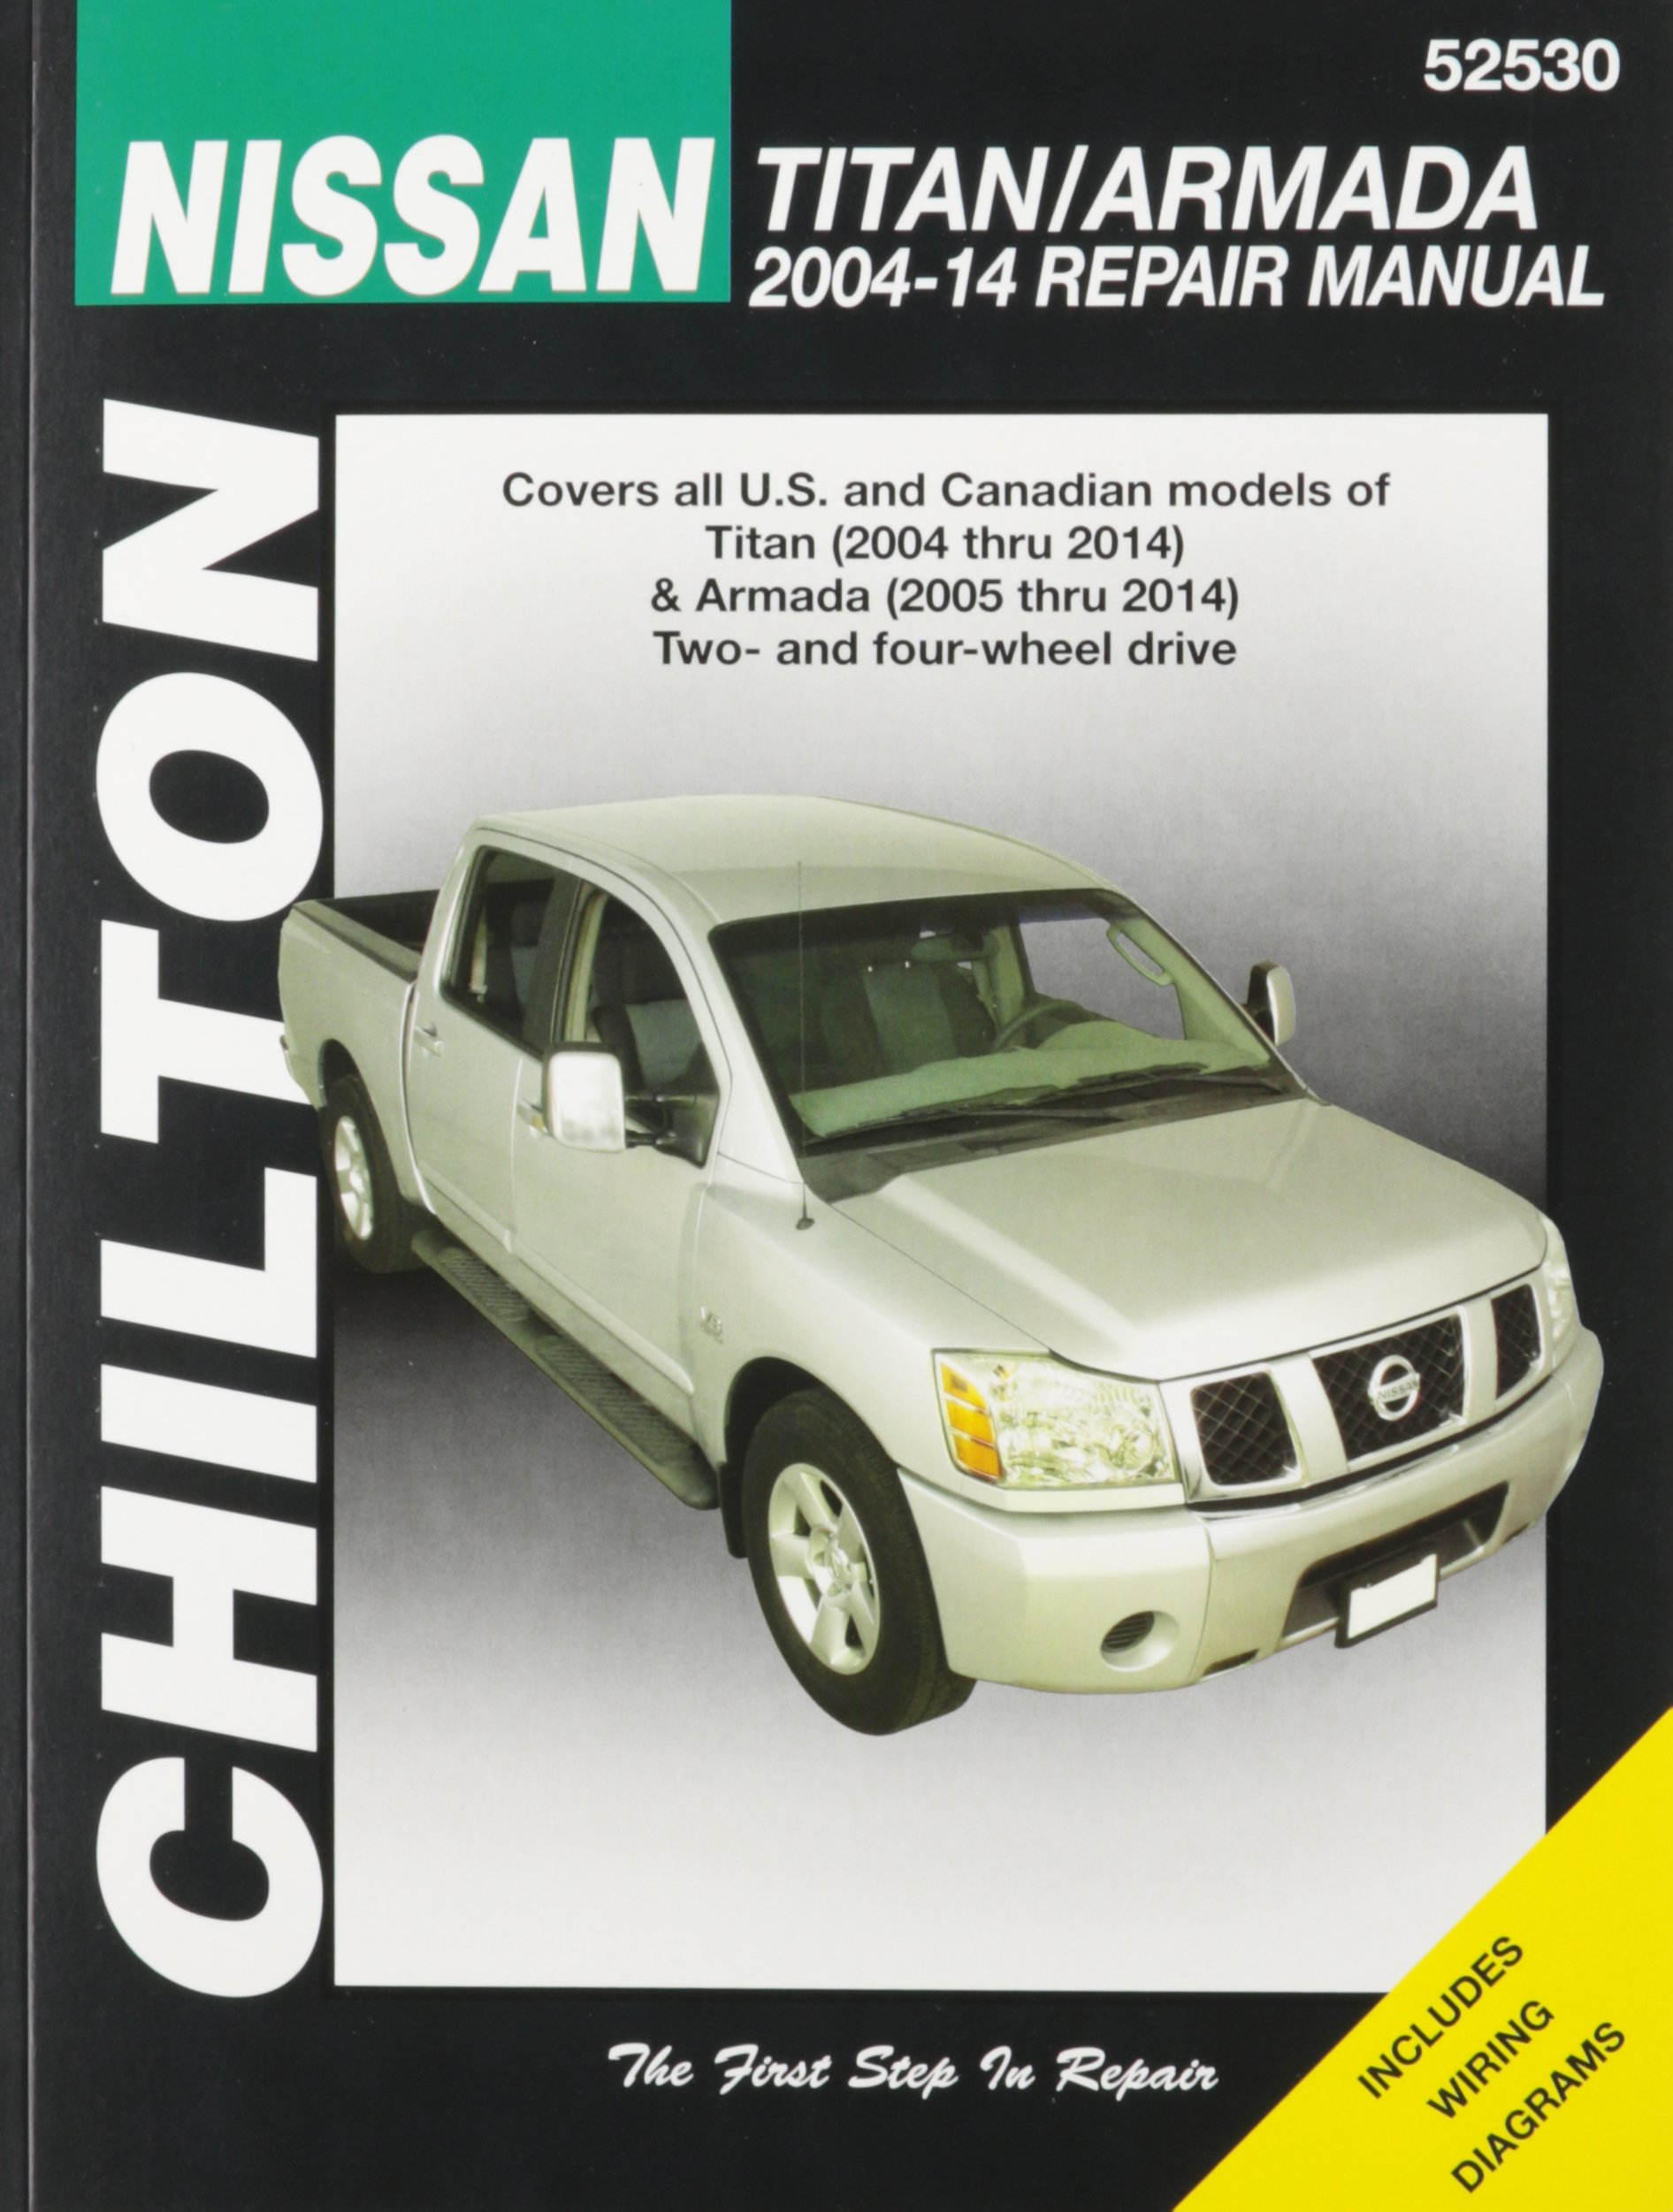 Chilton Nissan Titan/Armada 2004-2014 Repair Manual: Covers All U.s. and  Canadian Modes of Titan (2004 Thru 2014) & Armada (2005 Thru 2014) Two- and  .